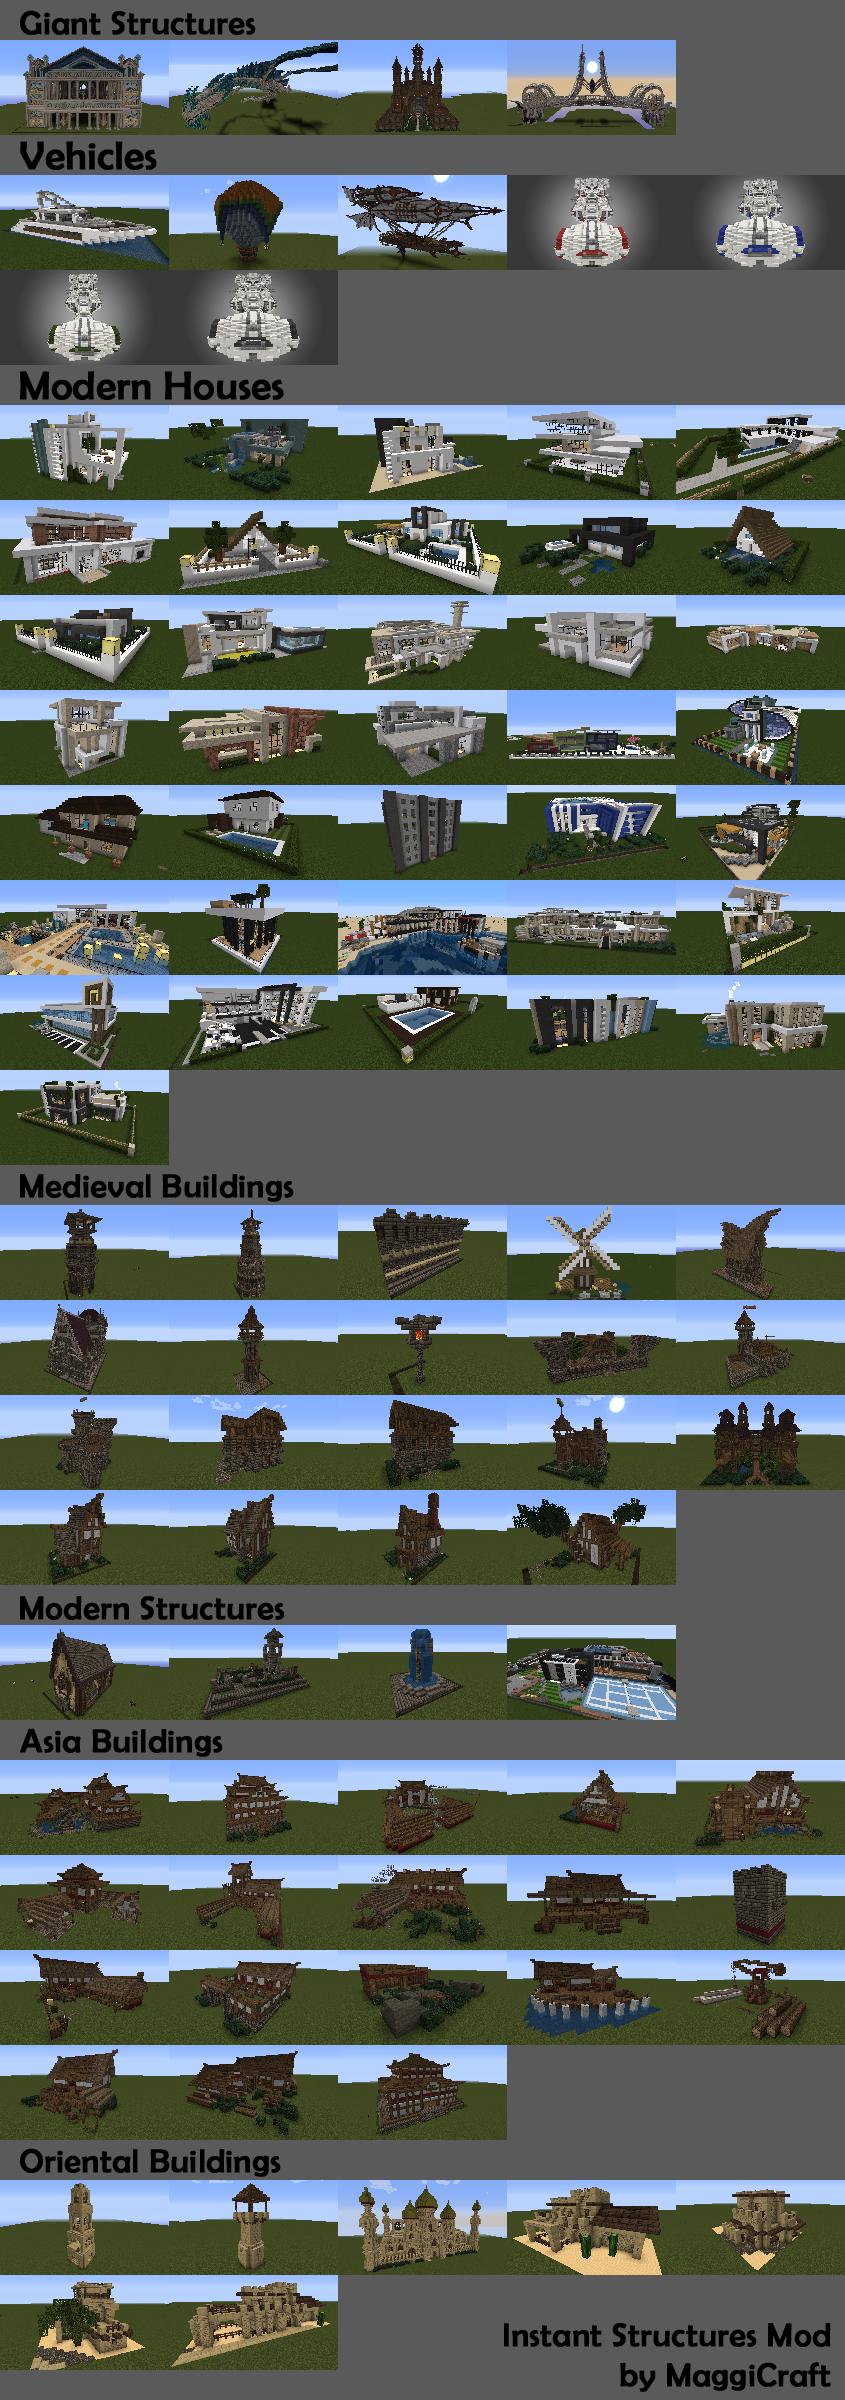 instant-structures-mod-by-maggicraft-1-111-10-21-7-10 Instant Structures Mod by MaggiCraft 1.11/1.10.2/1.7.10